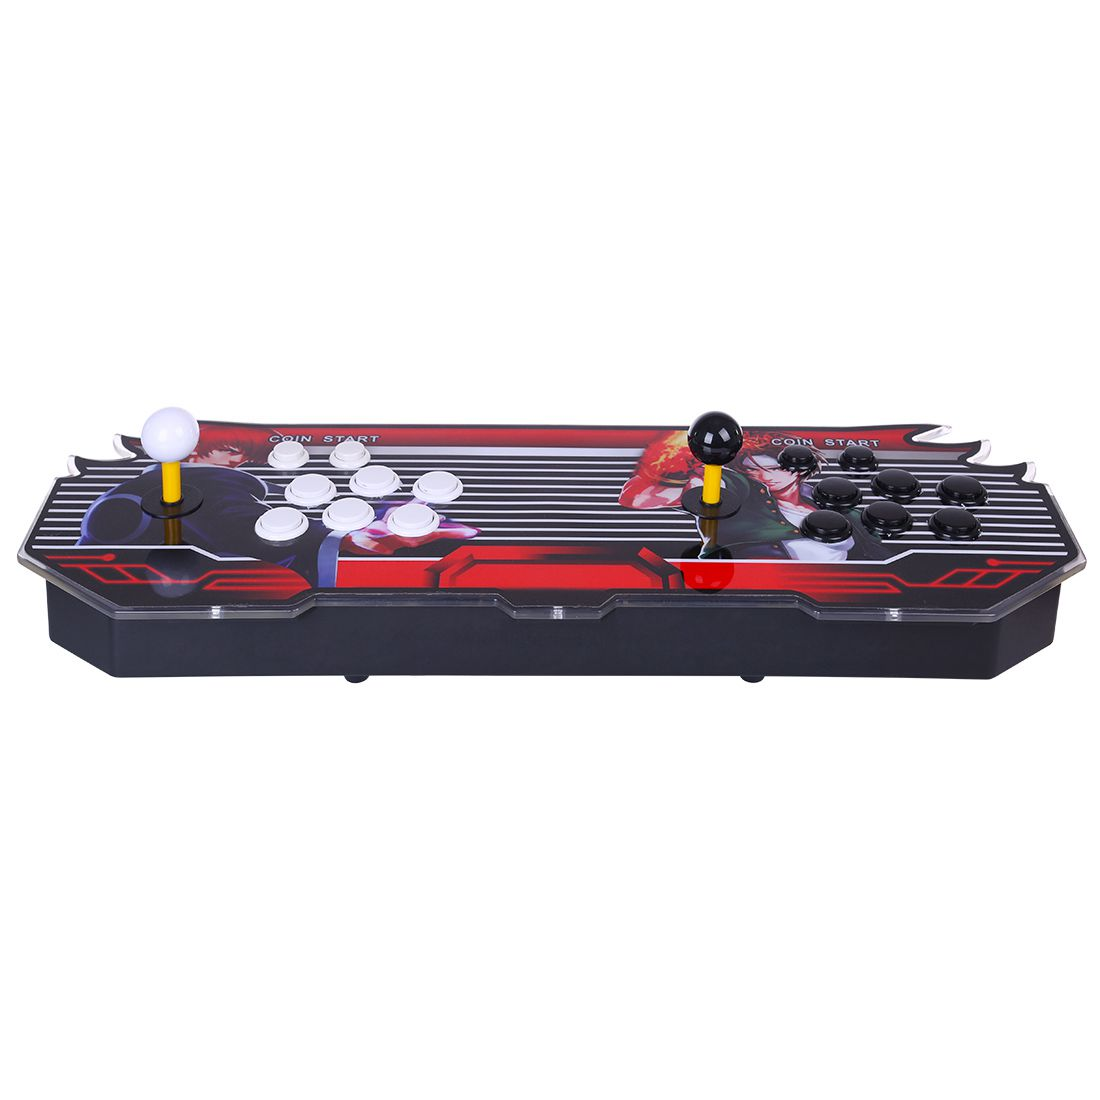 Pandora Box 11S 3003 Games Multi-player Arcade Game Console (Artwork: Legend of the King of Fighters)  (ABS Plastic Body)